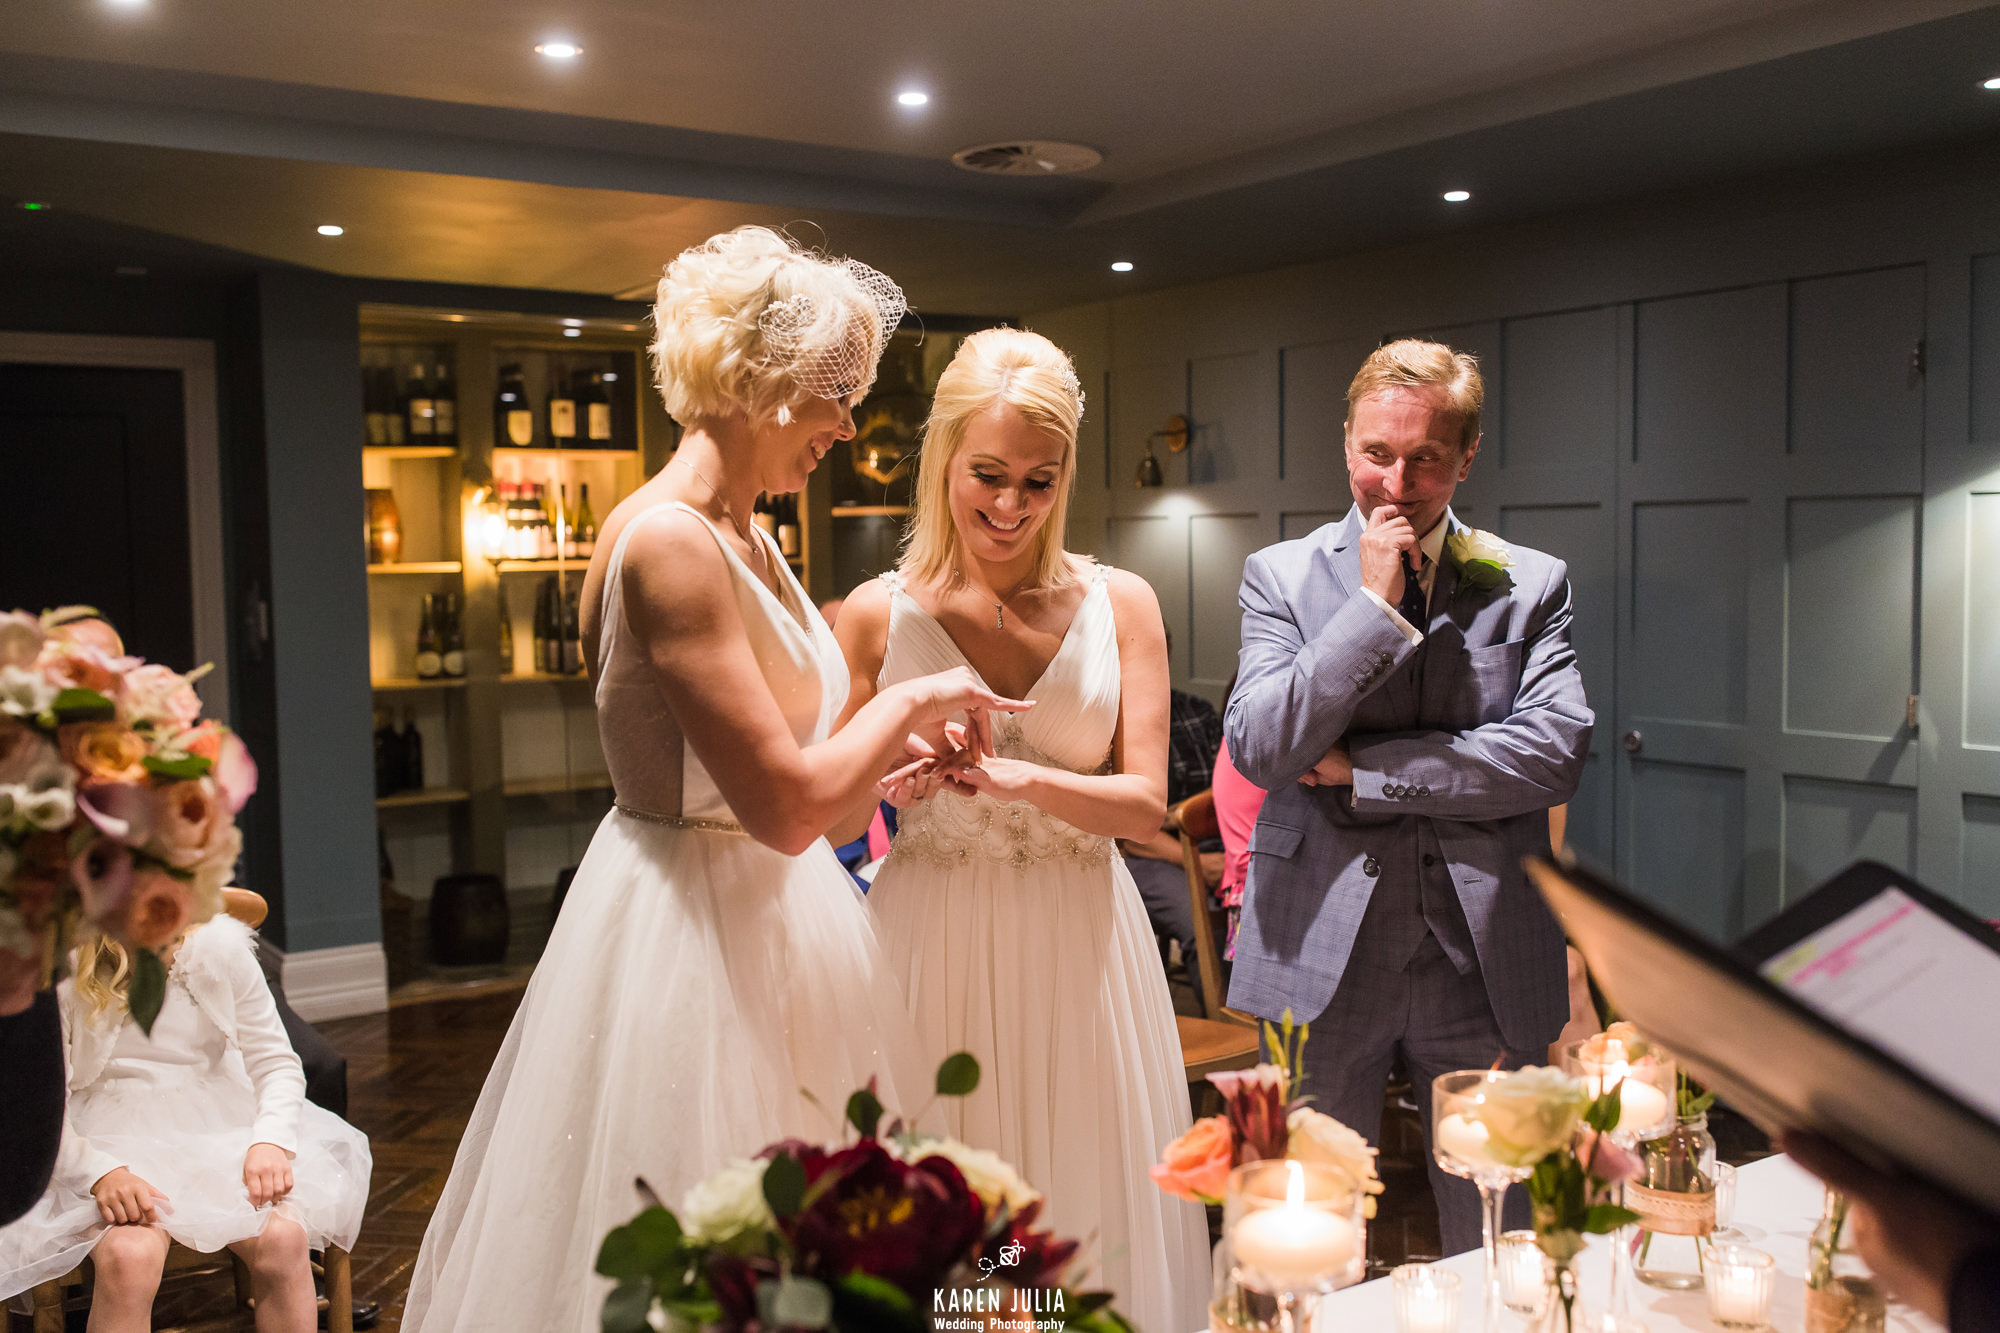 brides exchange rings during wedding ceremony at King Street Townhouse hotel